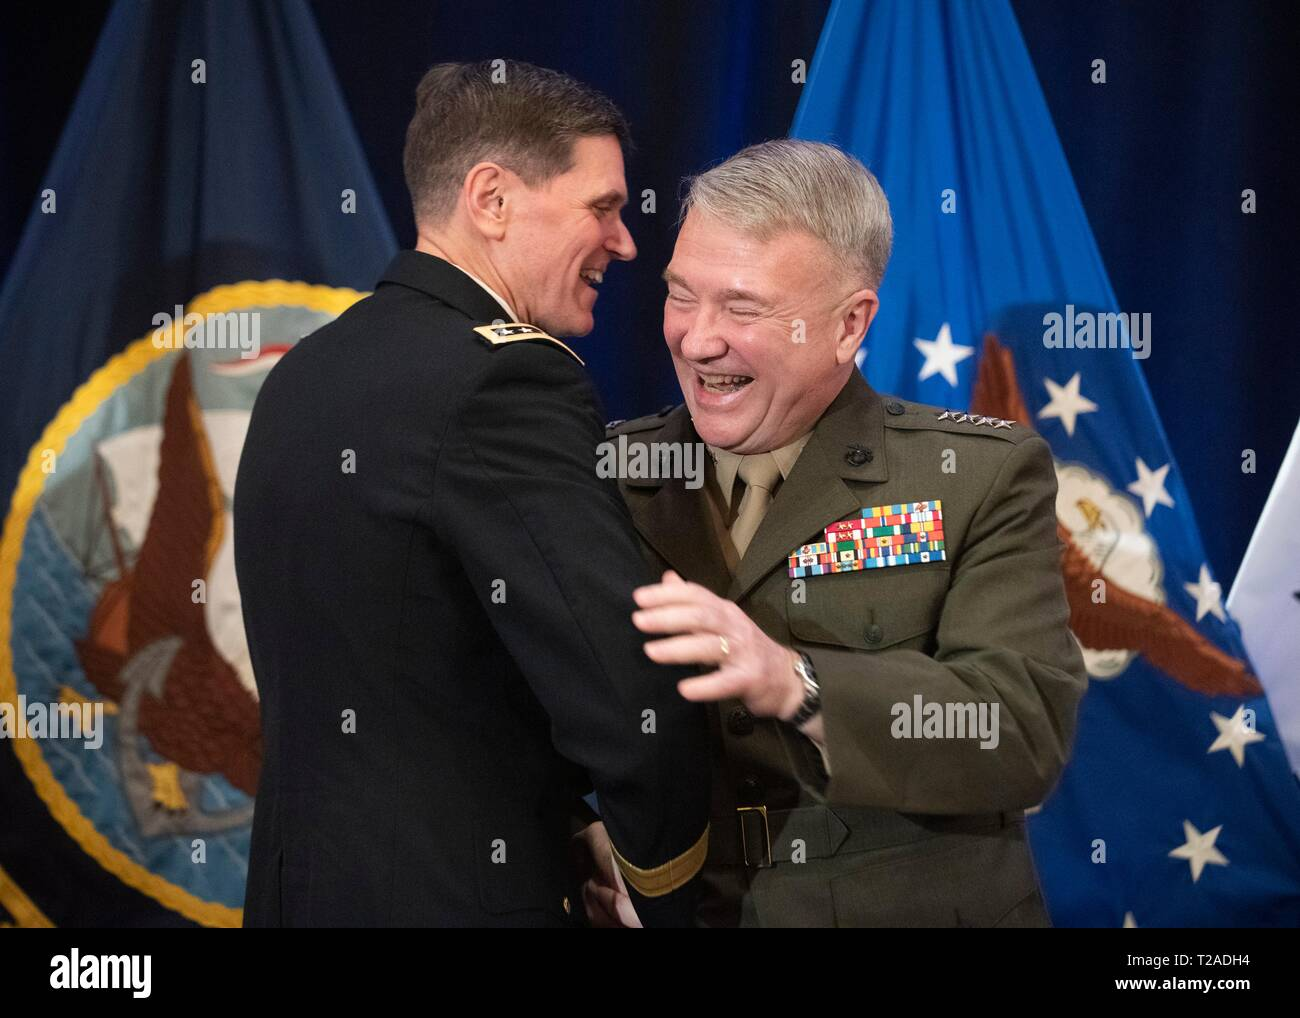 The outgoing commander of U.S. Central Command, General Joseph L. Votel, embraces his replacement Marine Corps Gen. Frank McKenzie, right, during his retirement ceremony at Macdill Air Force Base March 29, 2019 in Tampa, Florida. Votel retired after 39 years of military service. Stock Photo